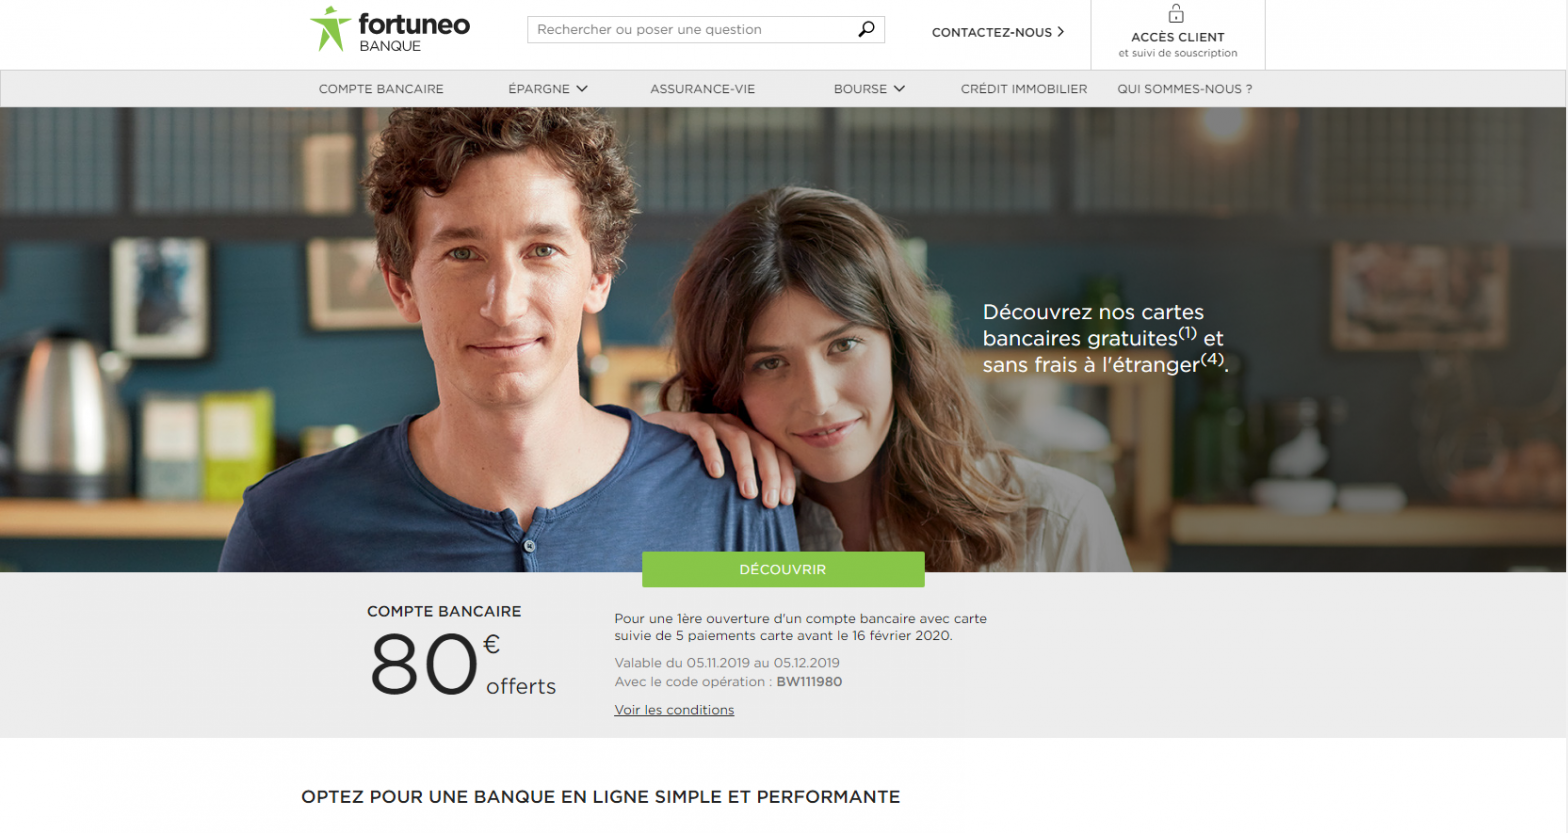 news-banque-fortuneo